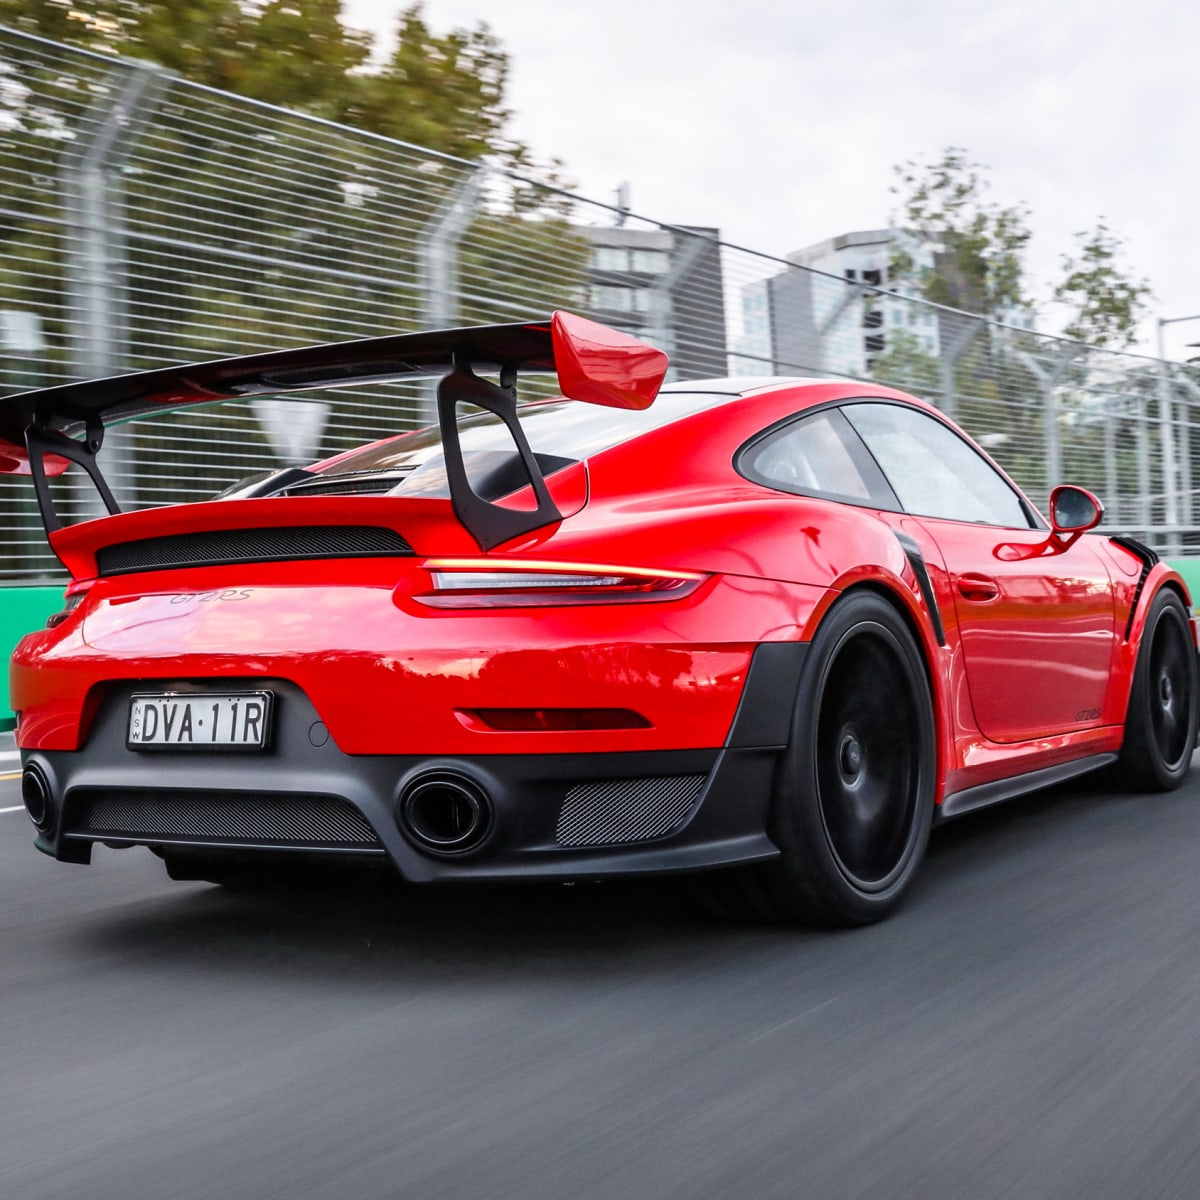 Porsche to resume 911 GT2 RS production after cargo ship